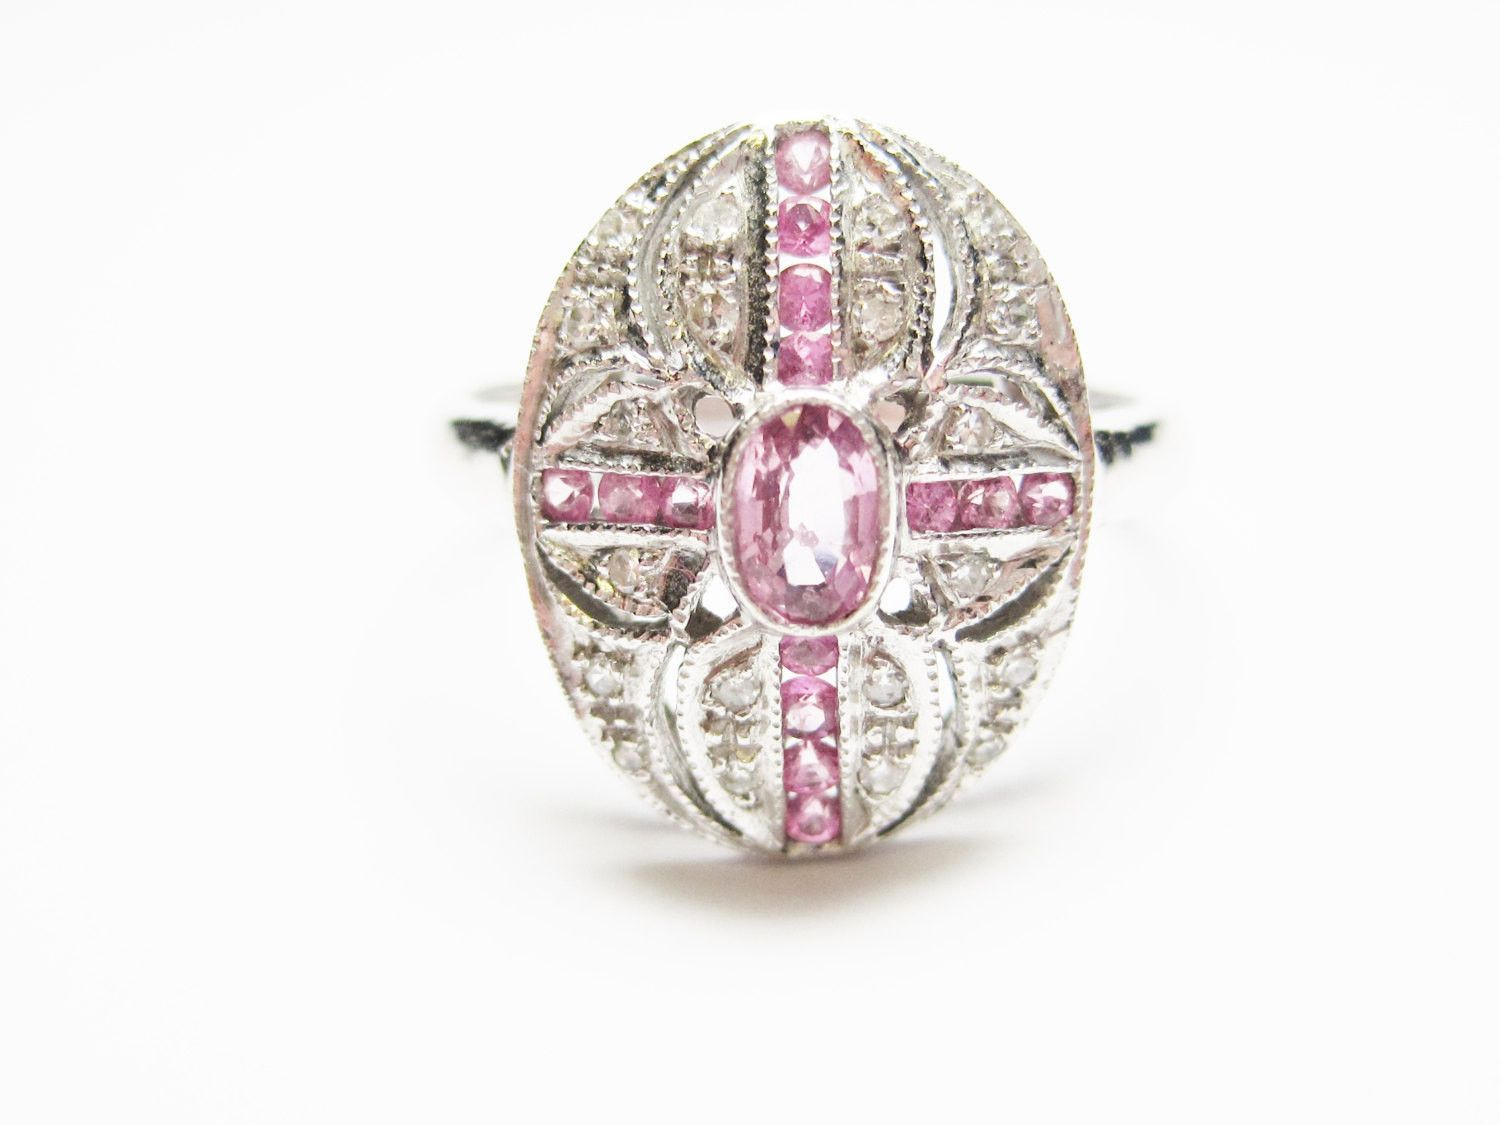 14K White Gold 1.1 Carat Pink Sapphire and Diamond Ring Size 7